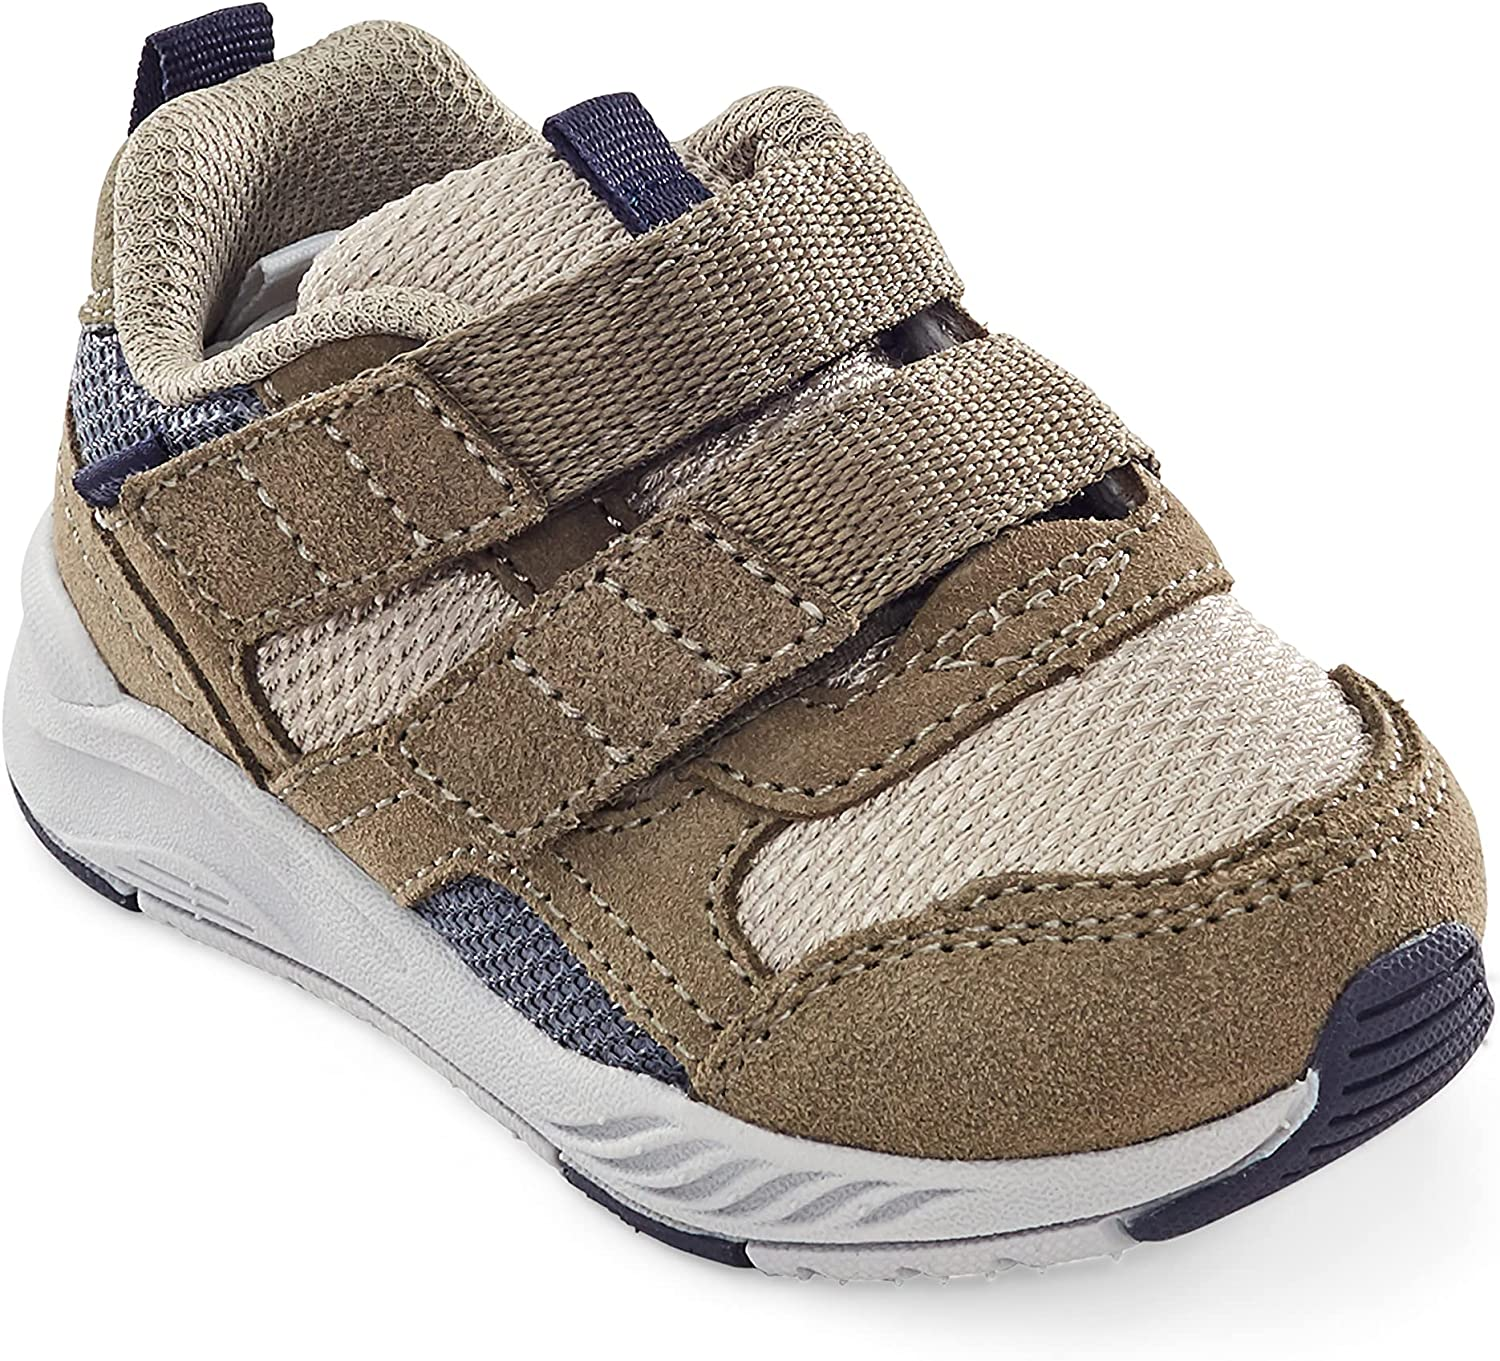 Stride Rite Boy's Made2Play Brighton Athletic Sneaker, Taupe, 9 X-Wide Toddler